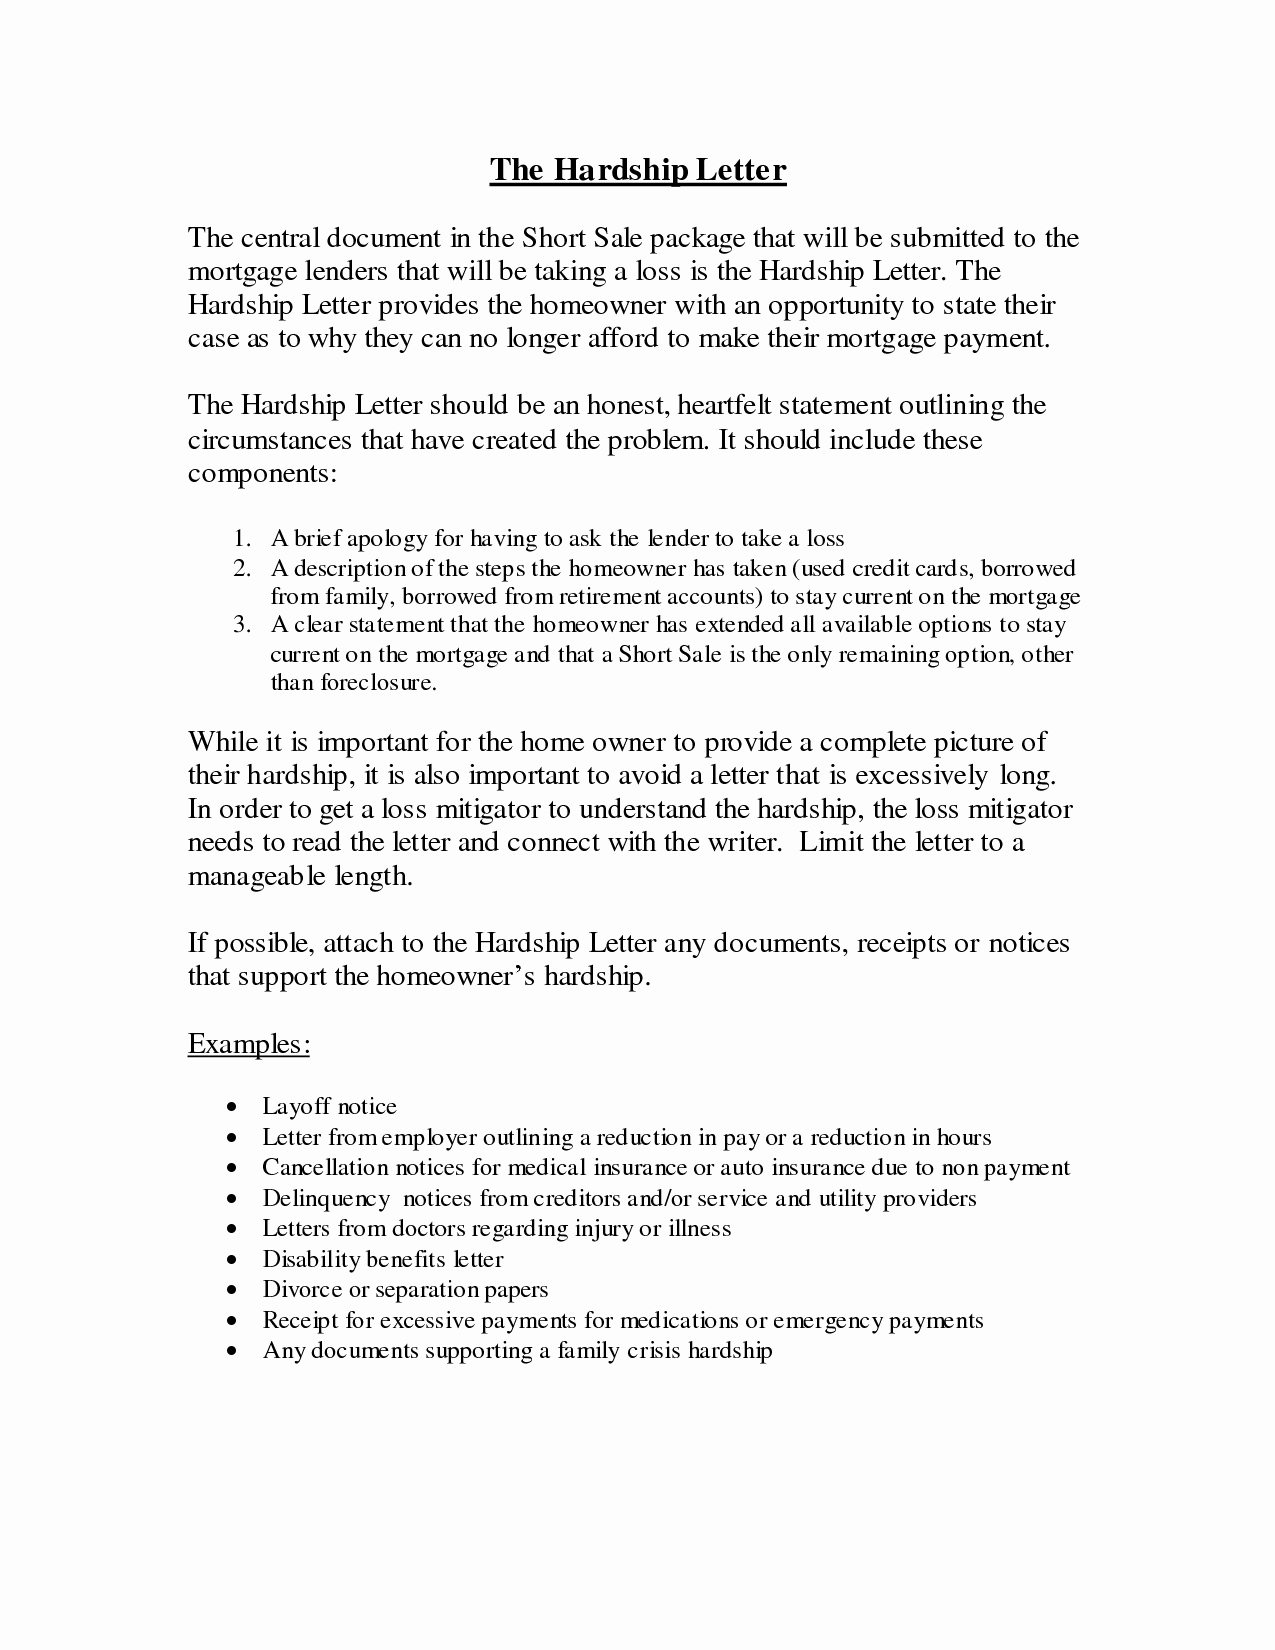 Immigration Hardship Letter Template - How to Write A Hardship Letter for Immigration for A Friend Unique